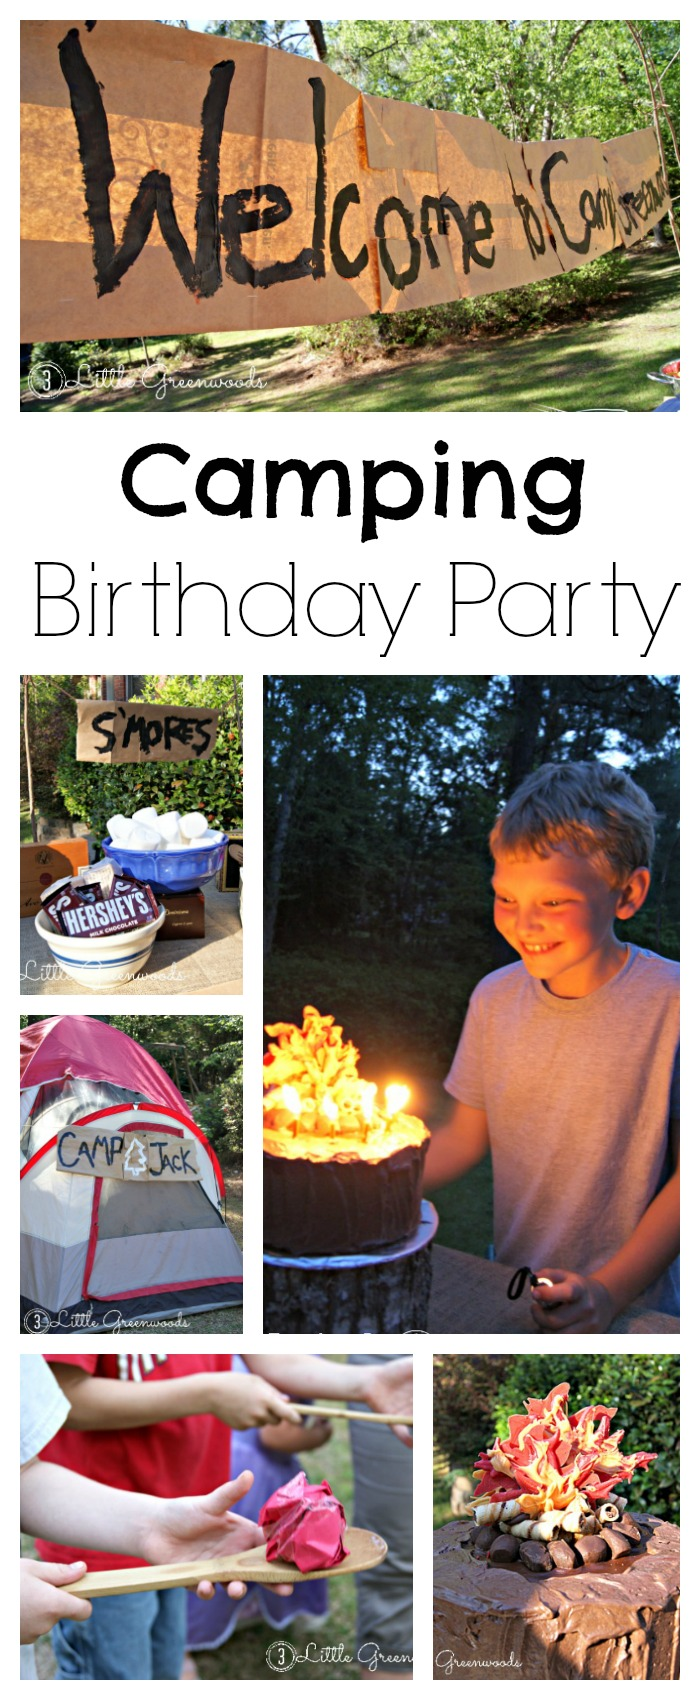 58c5c9b50 camping birthday party ideas - 3 Little Greenwoods